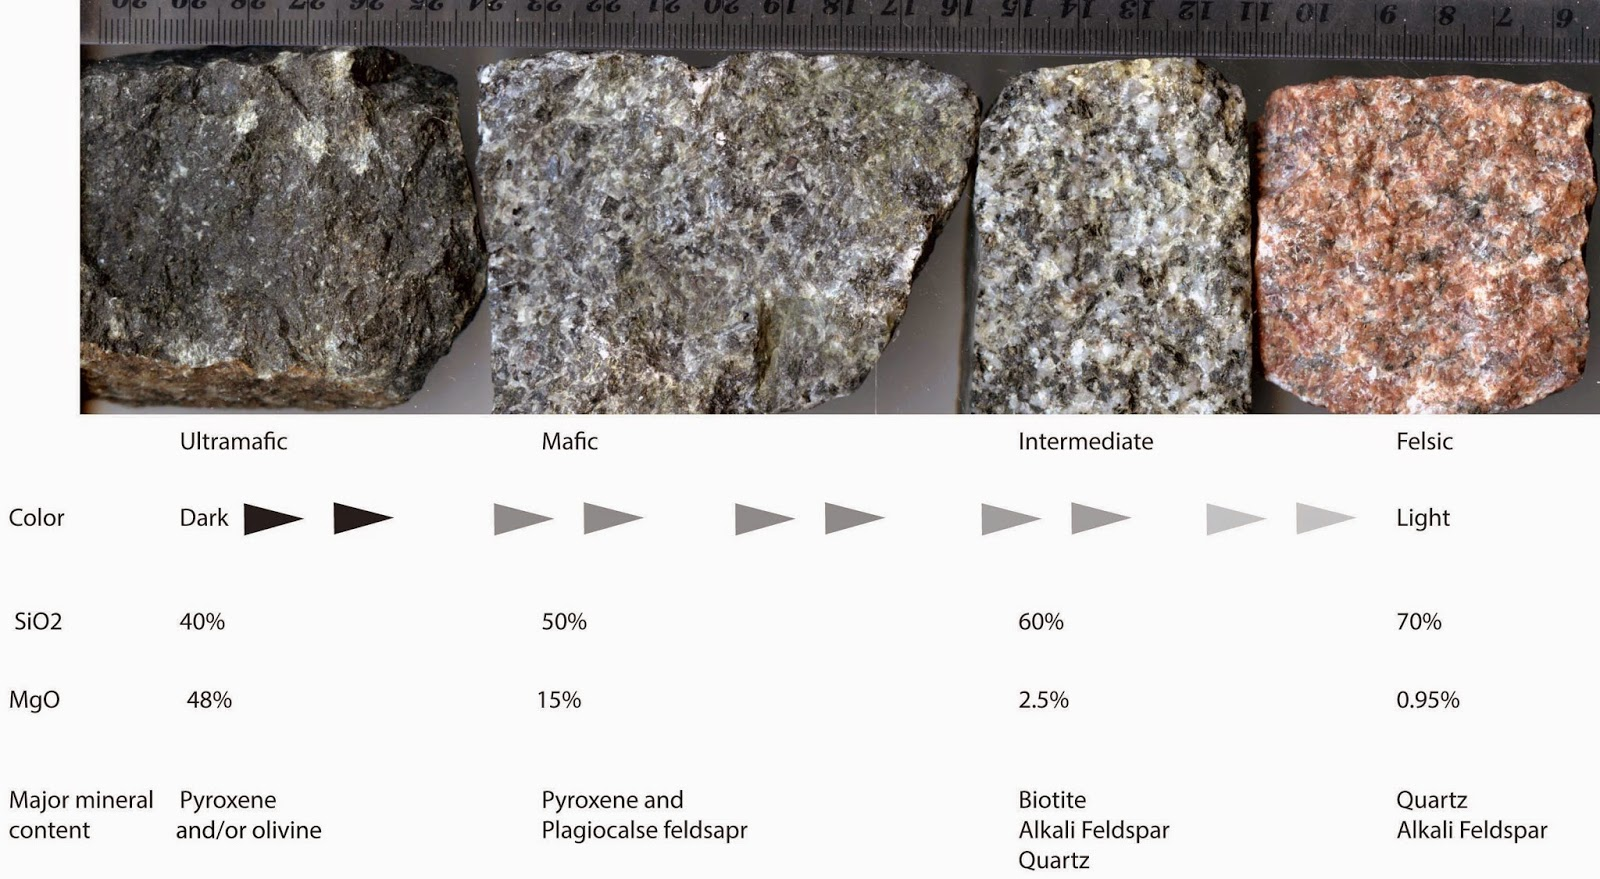 How To Classify Igneous Rocks Into Ultramafic Mafic